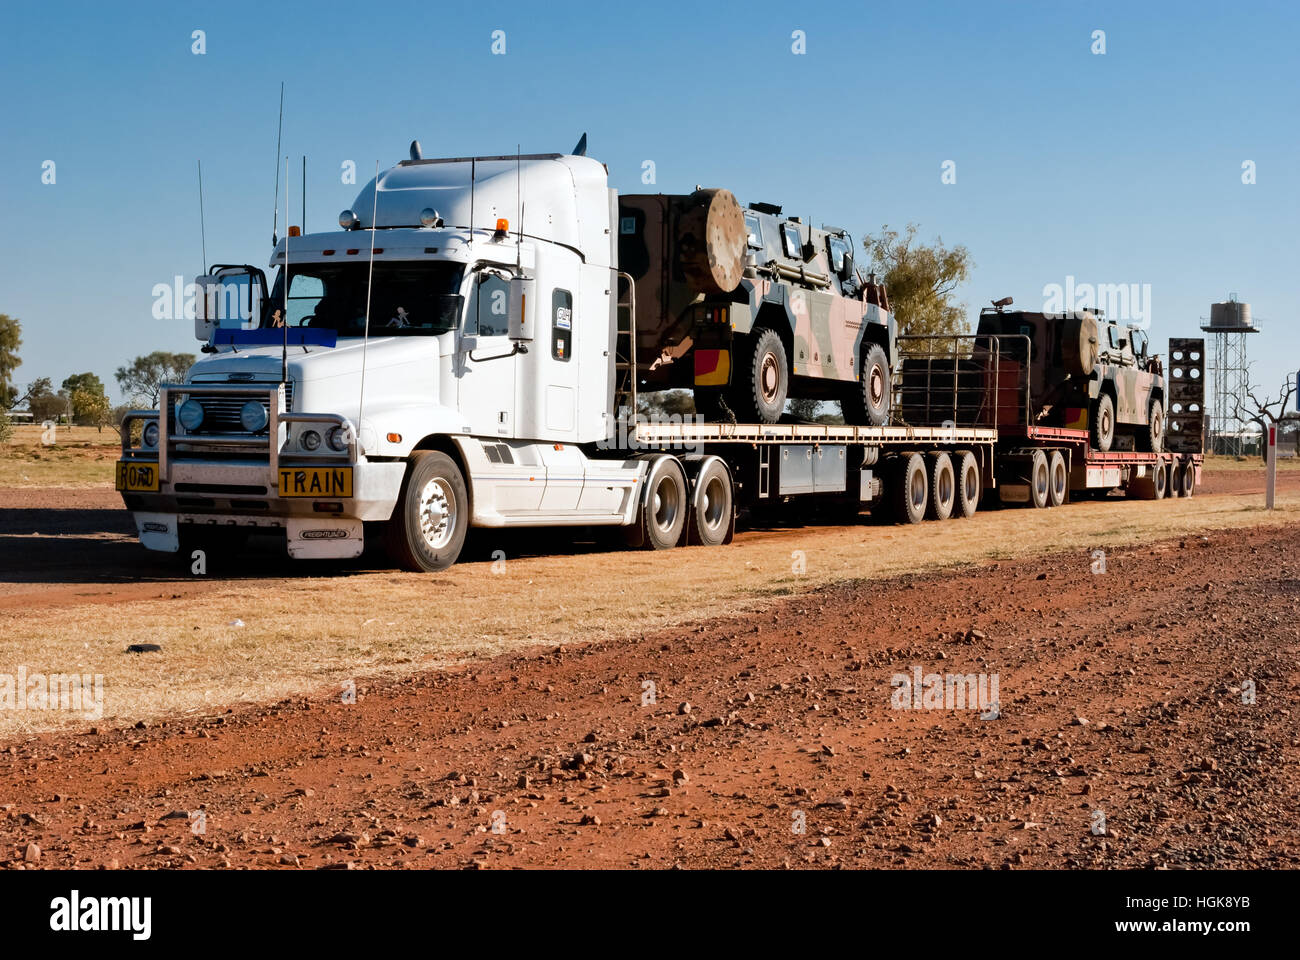 Road train in the Australian outback - Stock Image